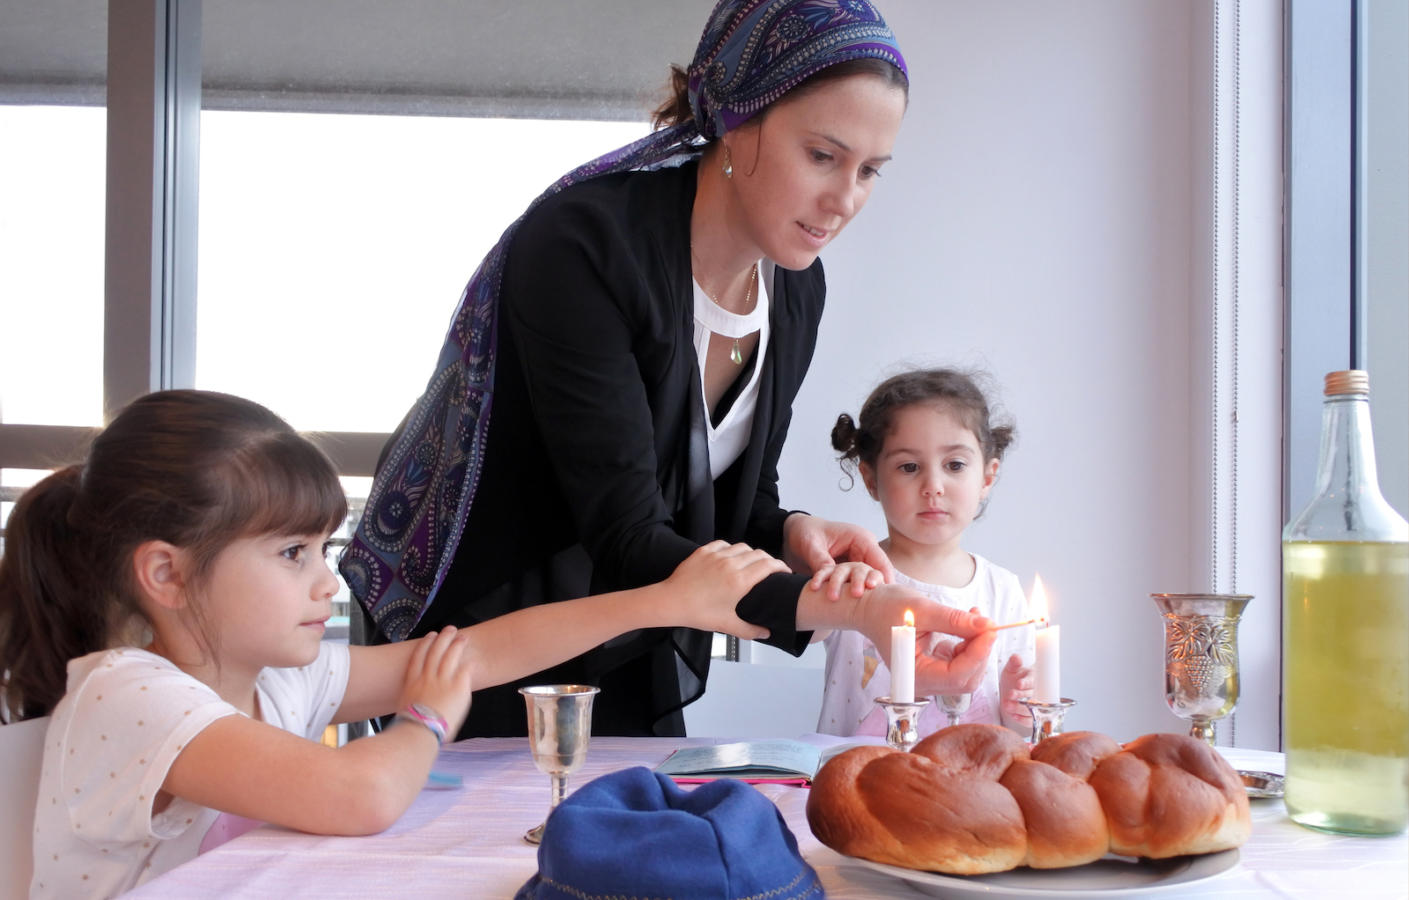 How to Make Shabbat Meaningful at Home